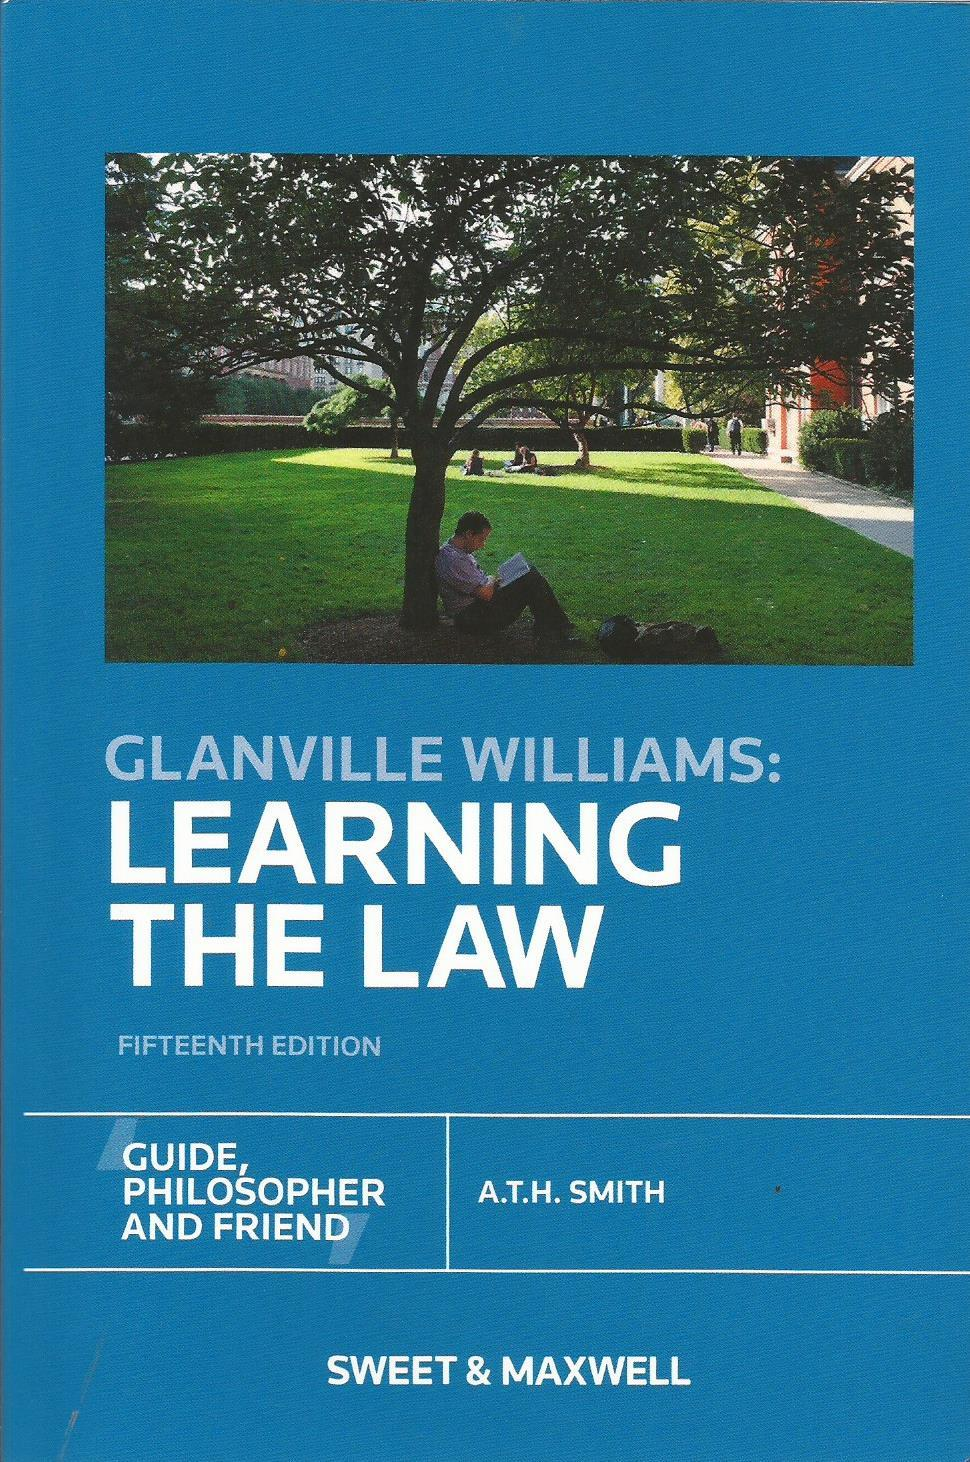 learning the law rm107.5 0.2750001.jpg